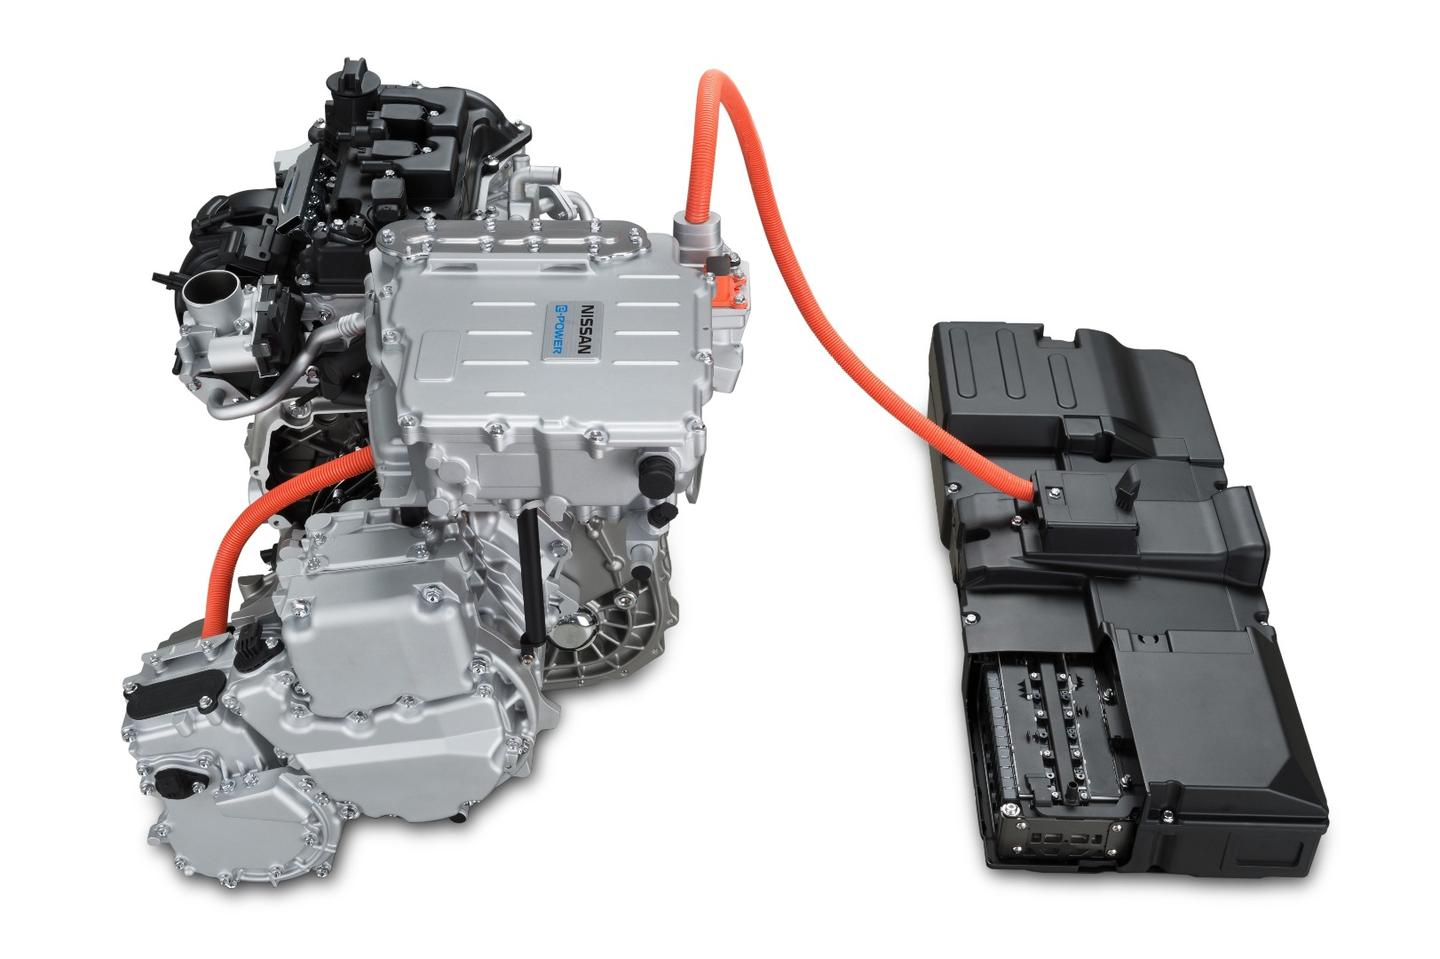 The e-Powerdrivetrain will debut in a variant of the Nissan Note